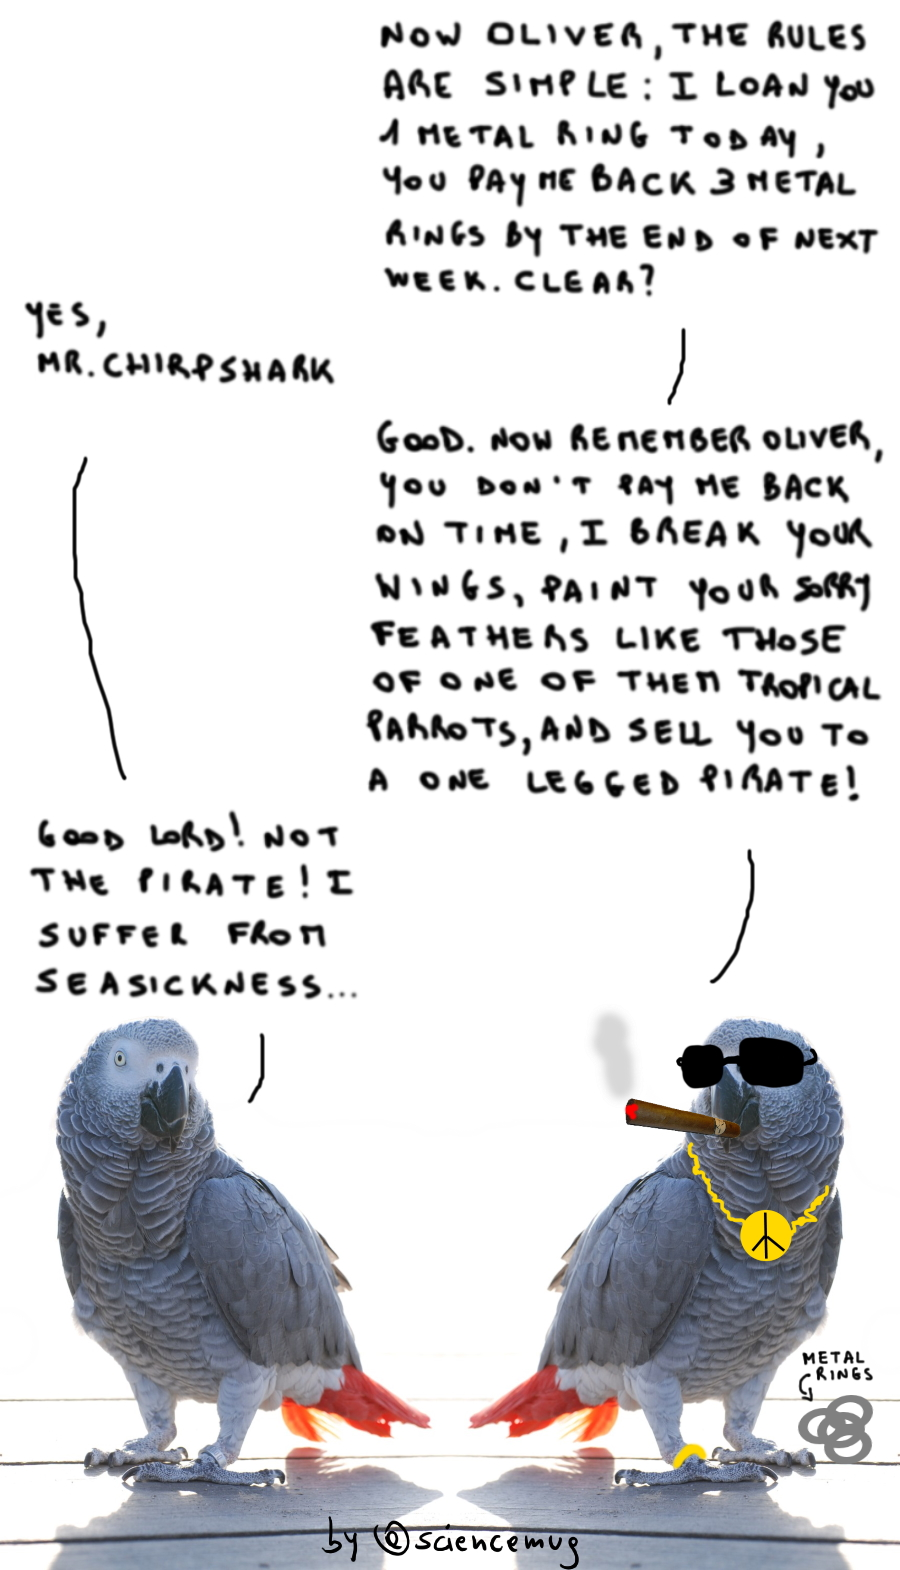 One parrot is a shark and loan one metal ring to the other one (by @sciencemug)